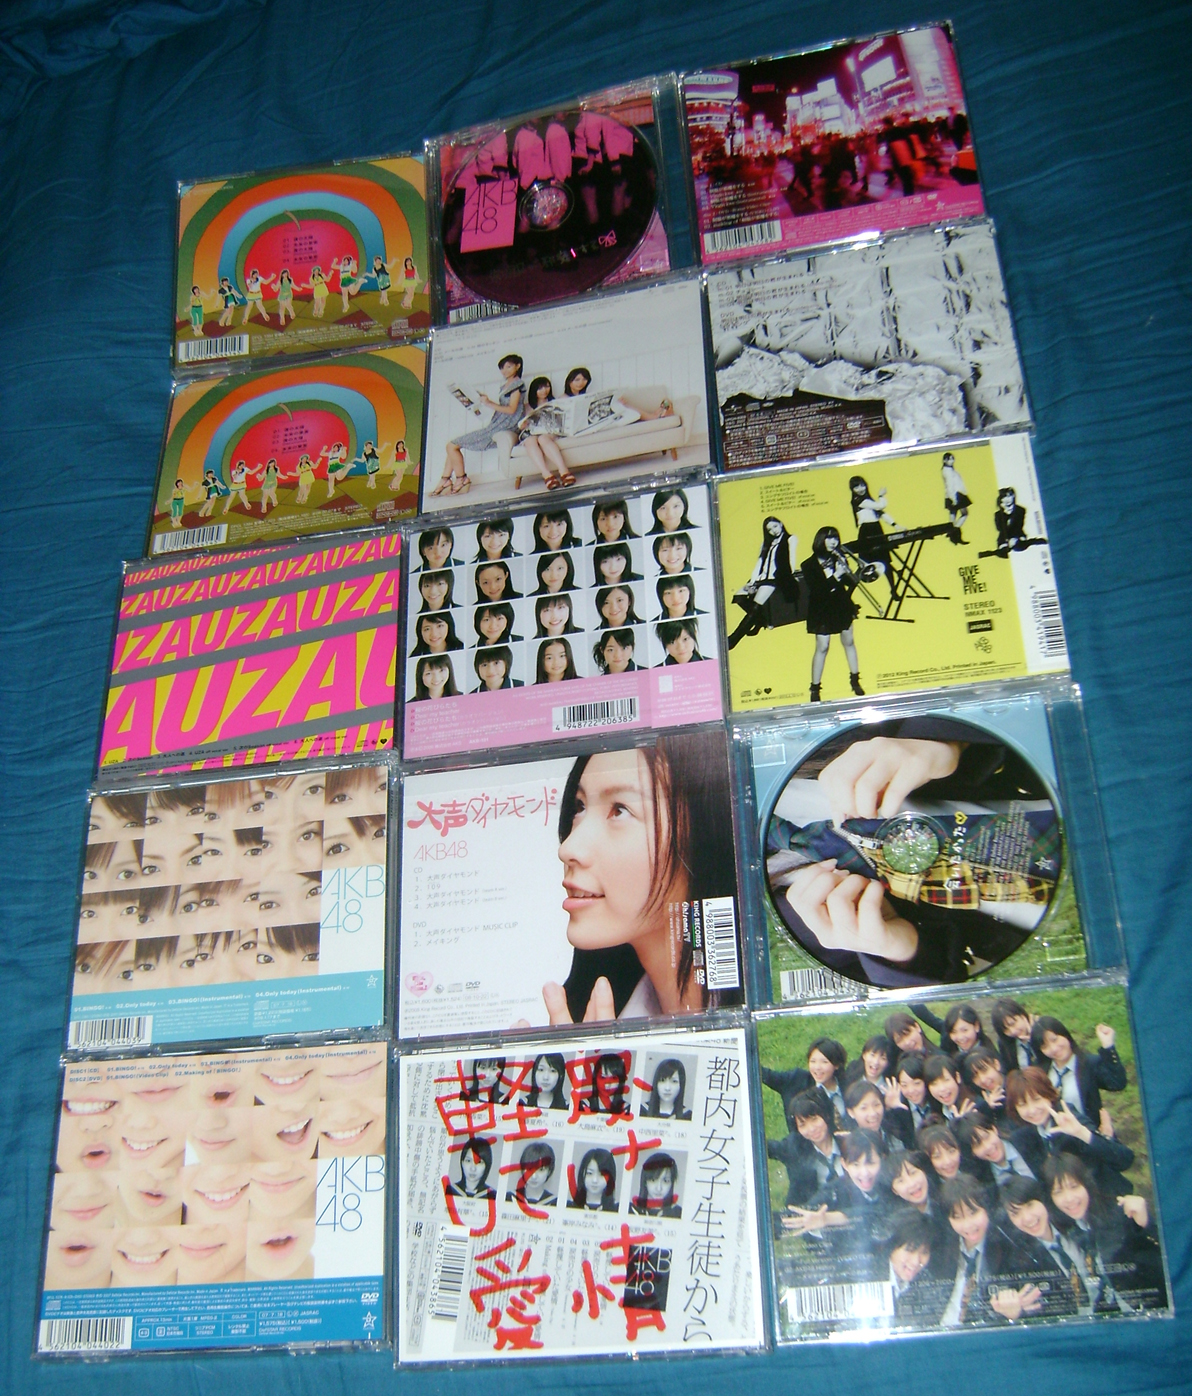 AKB CD 2 AKB48: A Musical Collection!  Part 1.